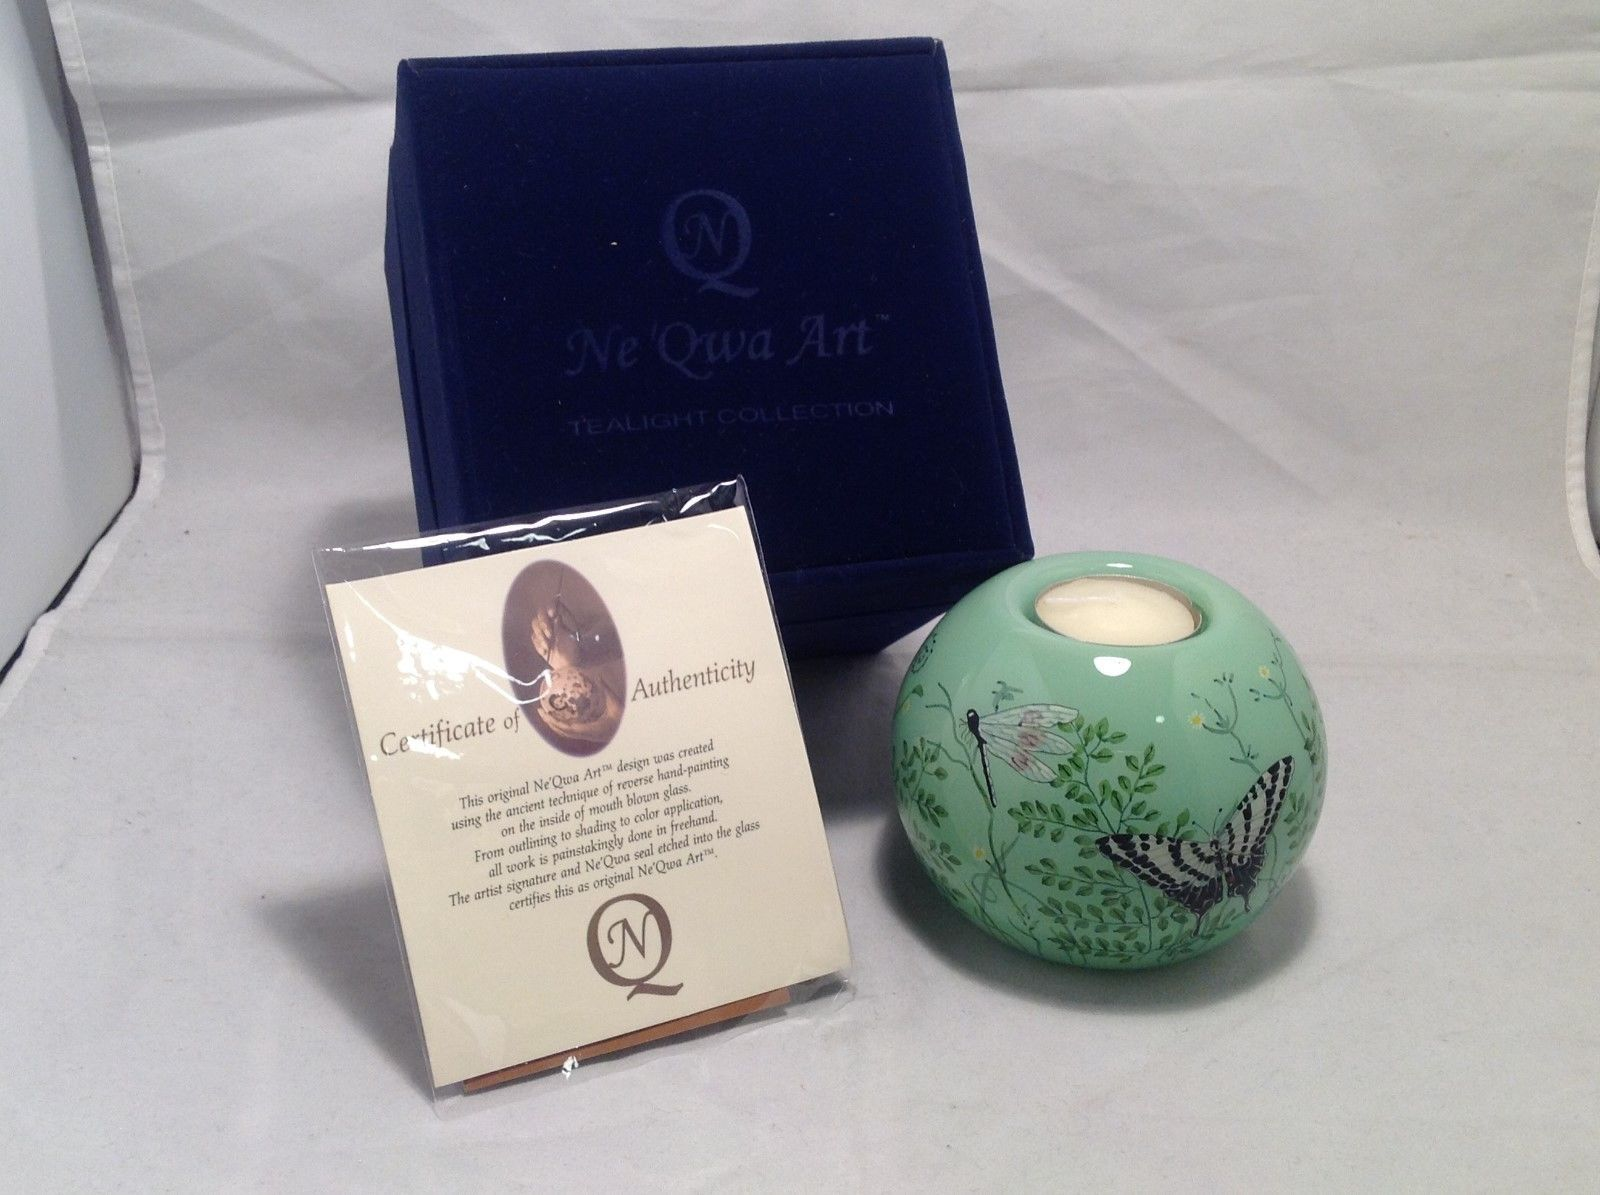 New In Box Ne Qwa Art Garden Bugs Tealight Collection by Paul Brent